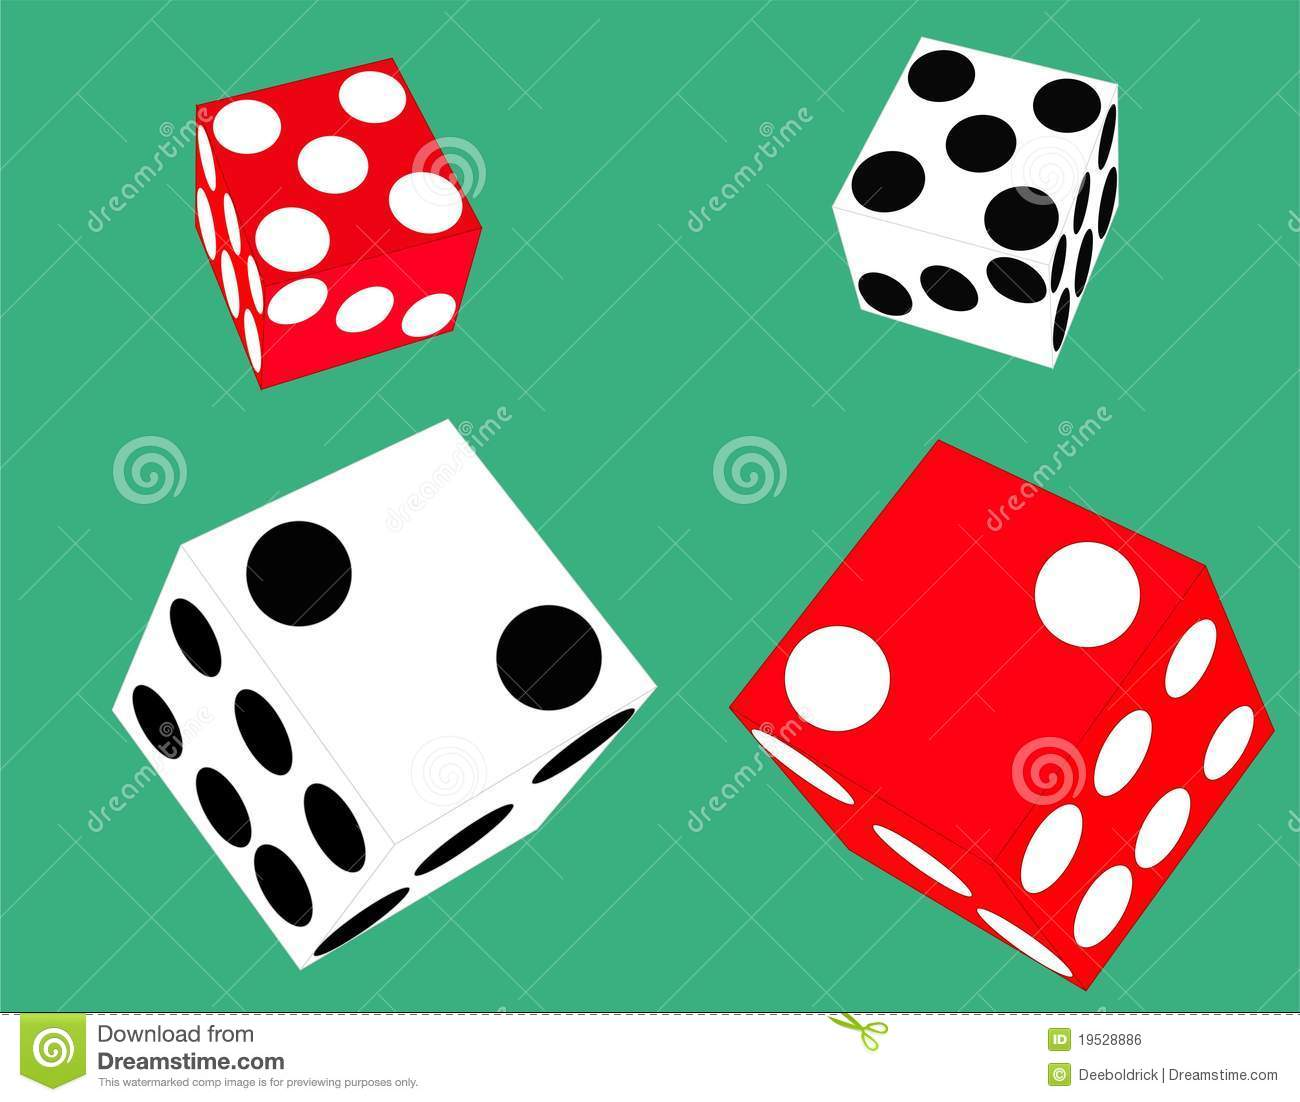 2 Pairs Of Floating Dice Stock Vector Illustration Of